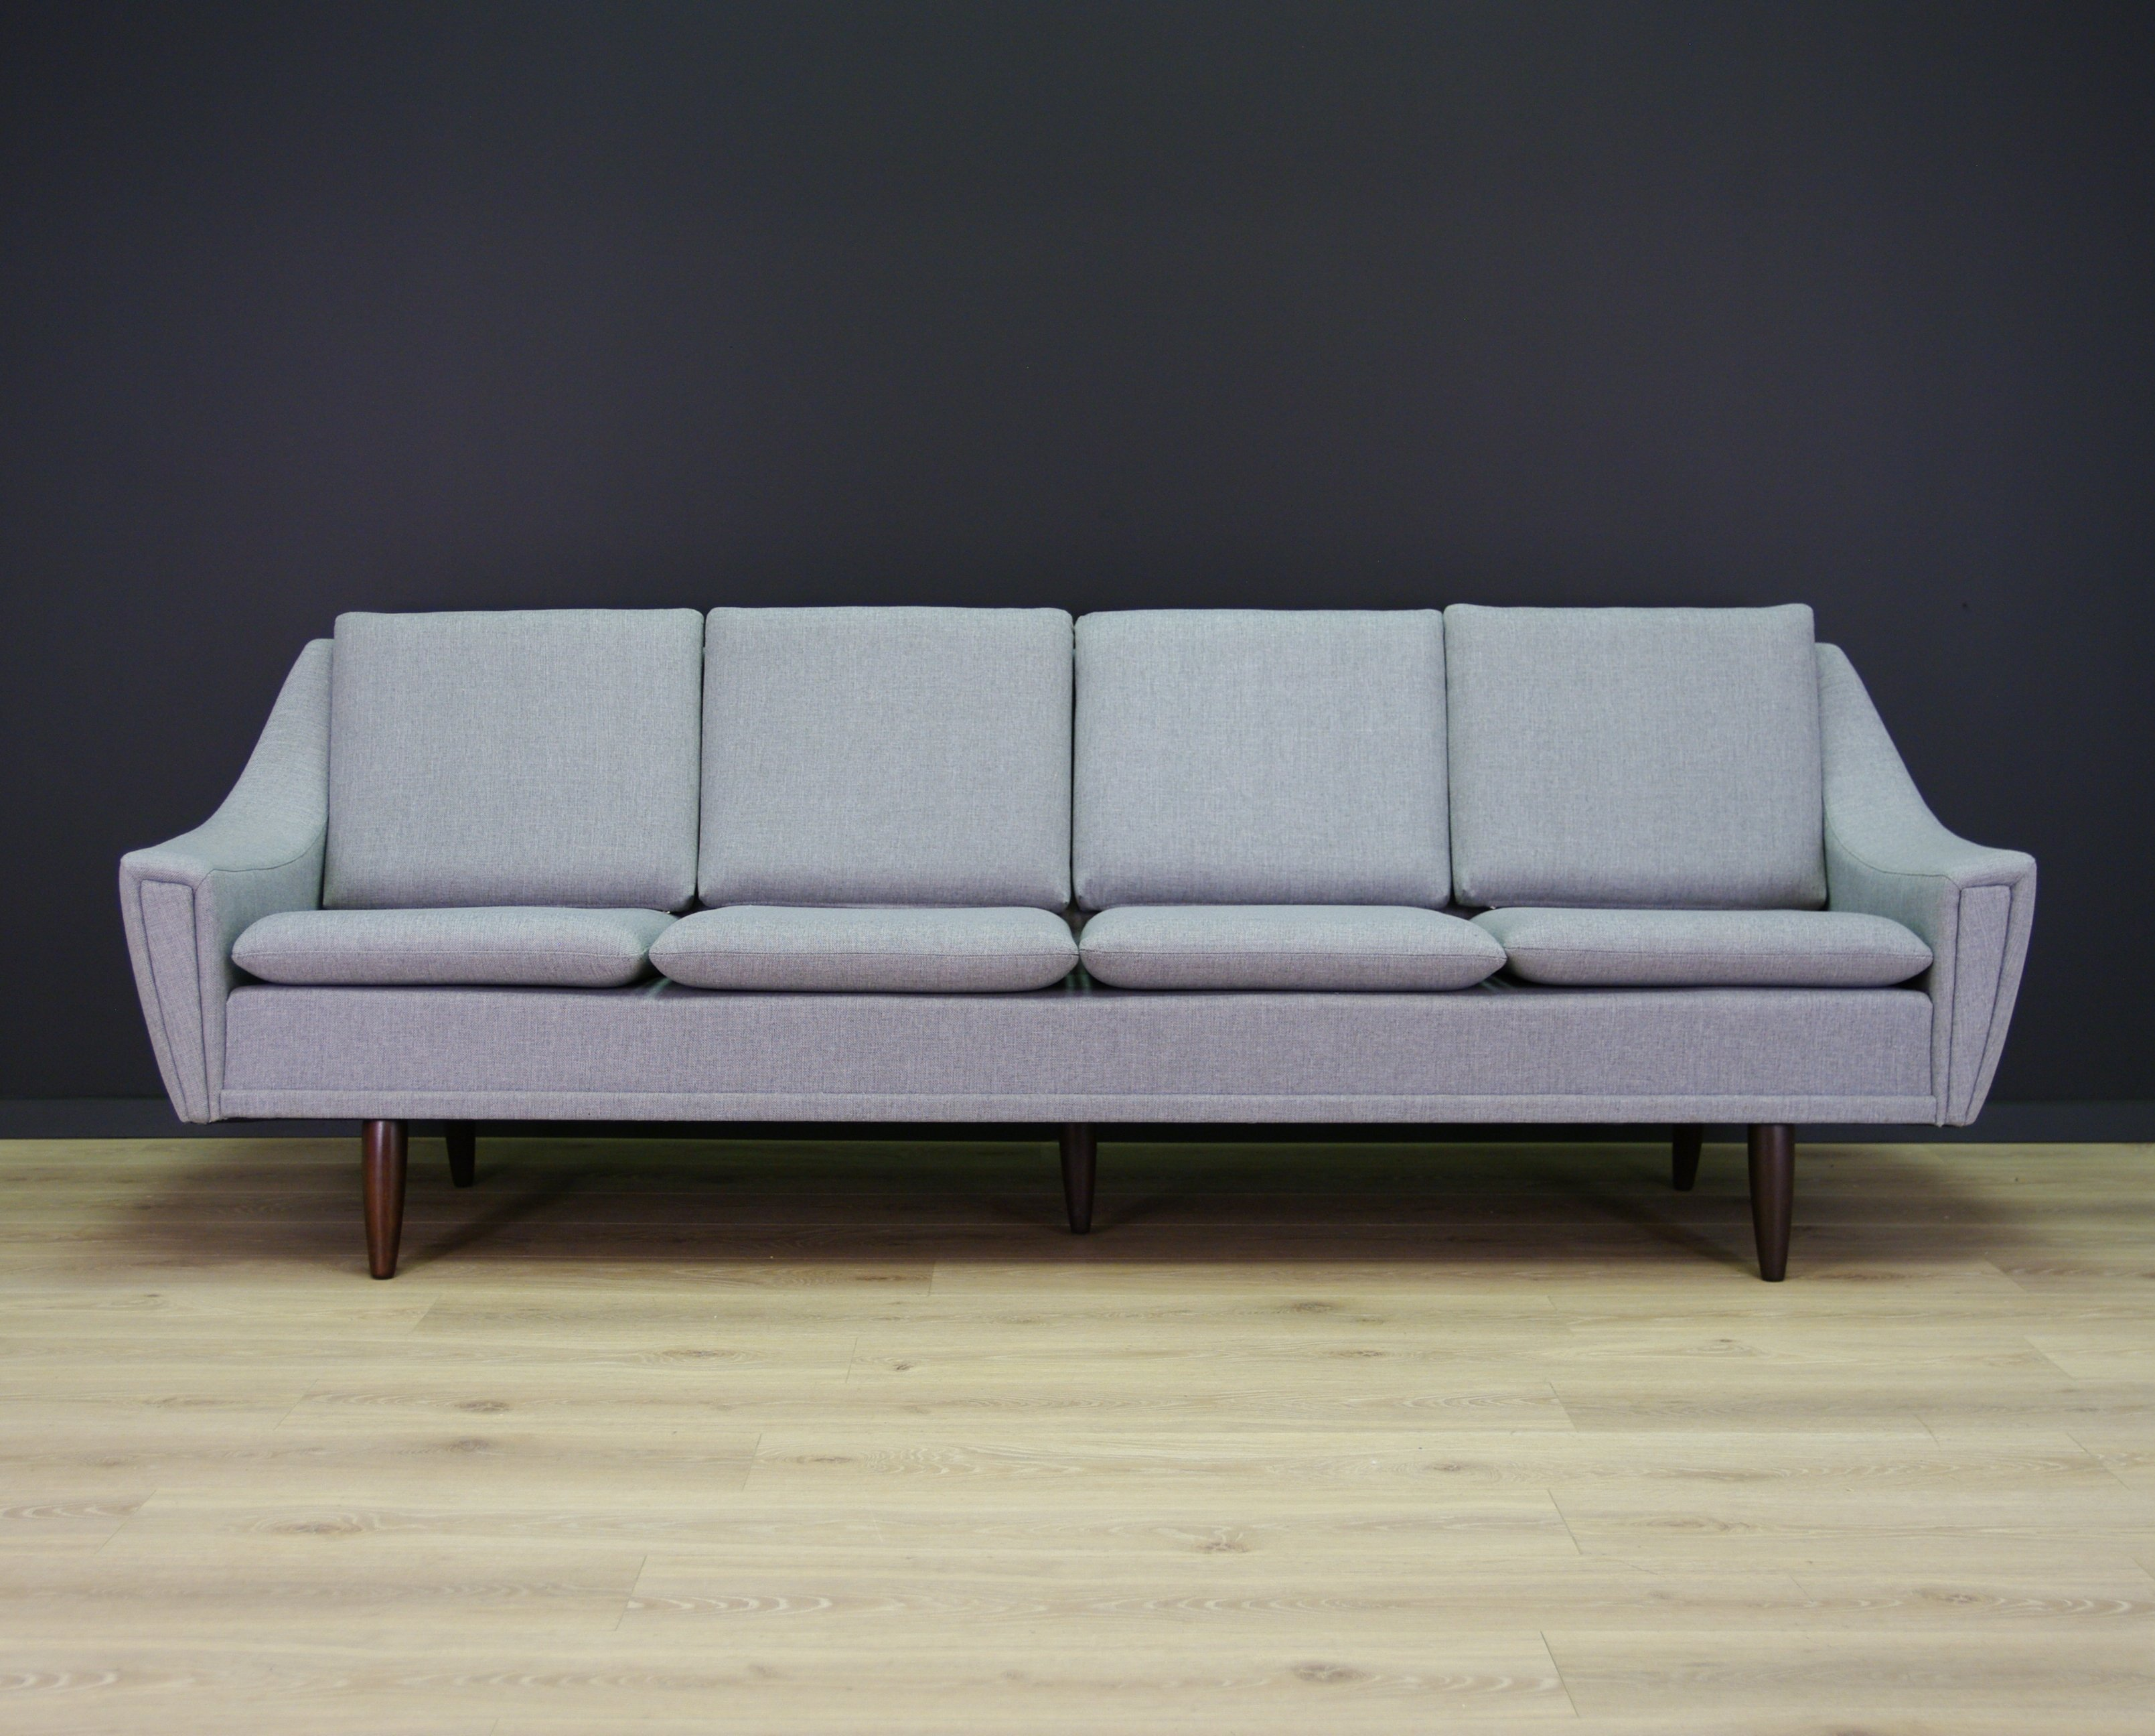 vintage couch. Simple Couch Vintage Sofa 1960s For Couch